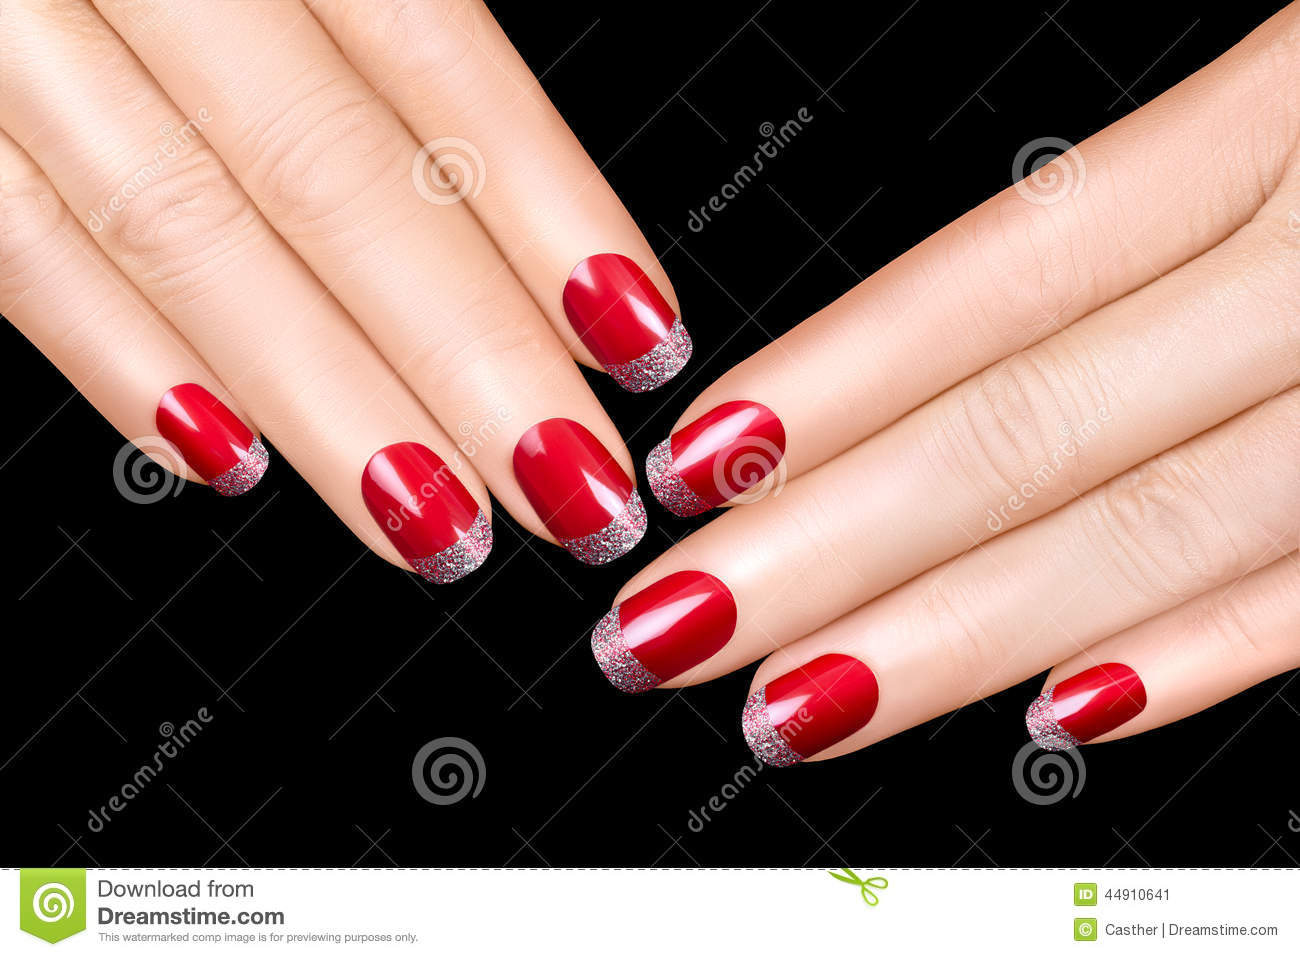 Nail Art. Luxury Nail Polish. Nail Stickers